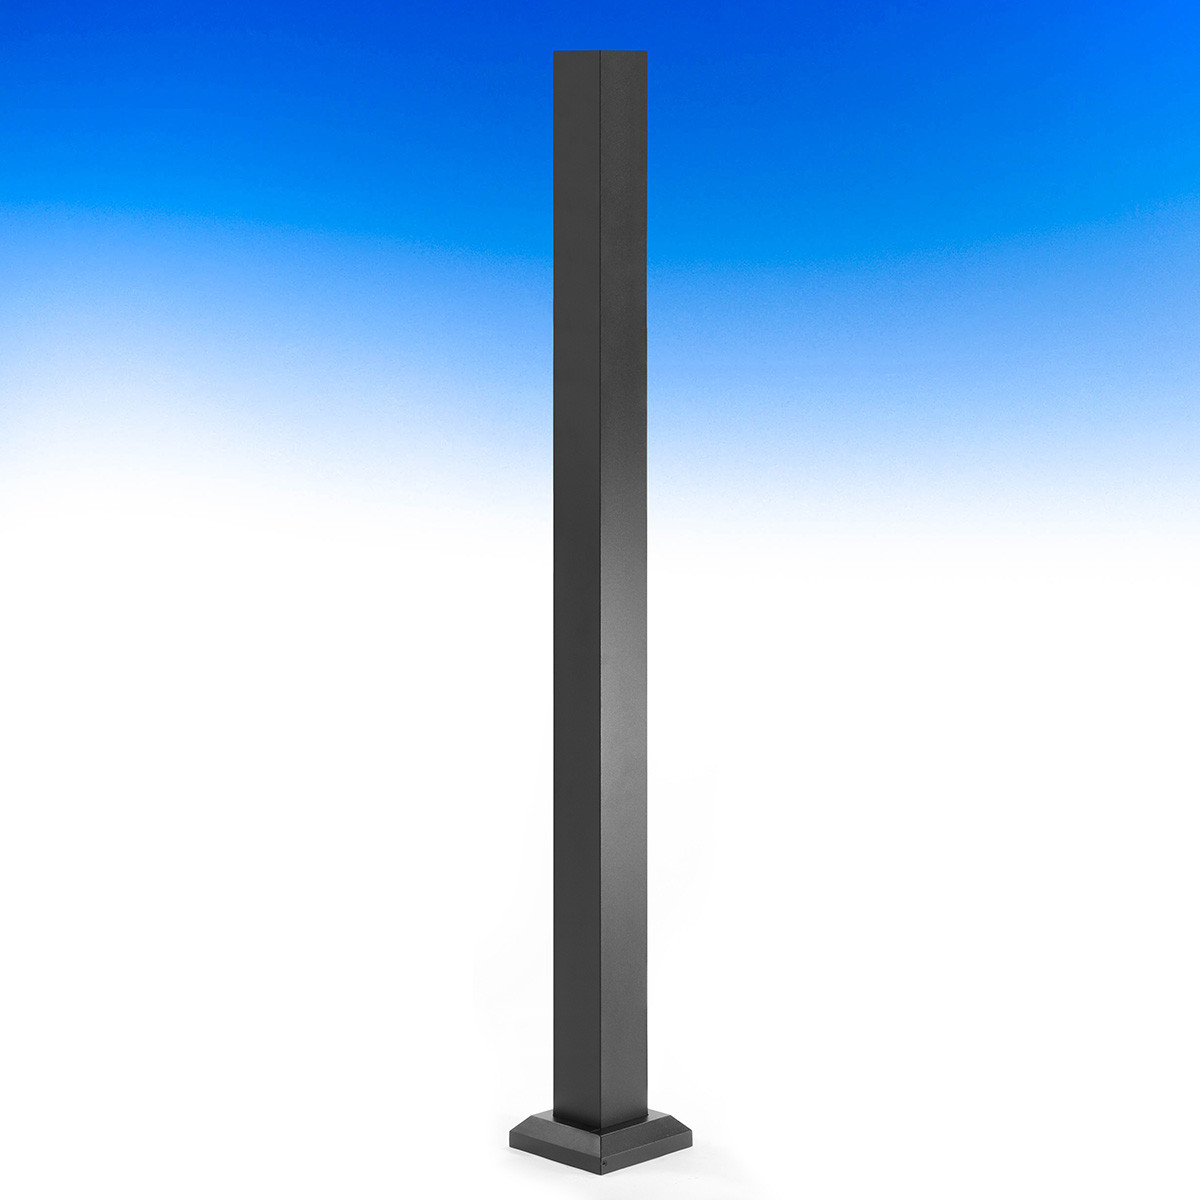 AL13 Aluminum Post by Fortress (Base cover/skirt is included)